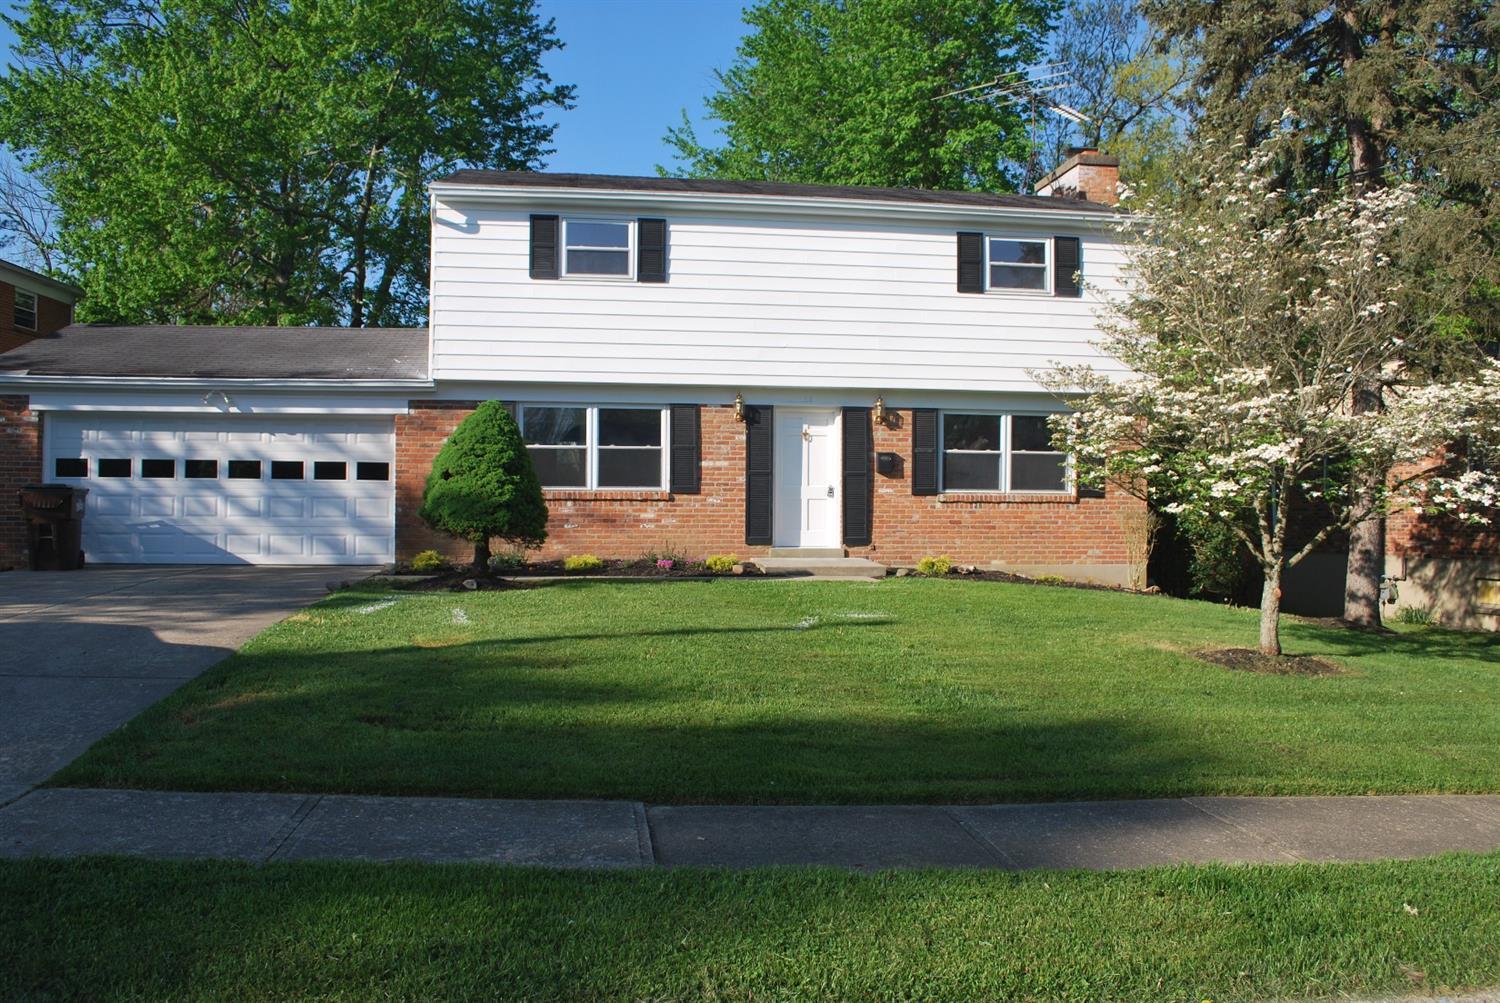 38 Crestview Dr Milford, OH